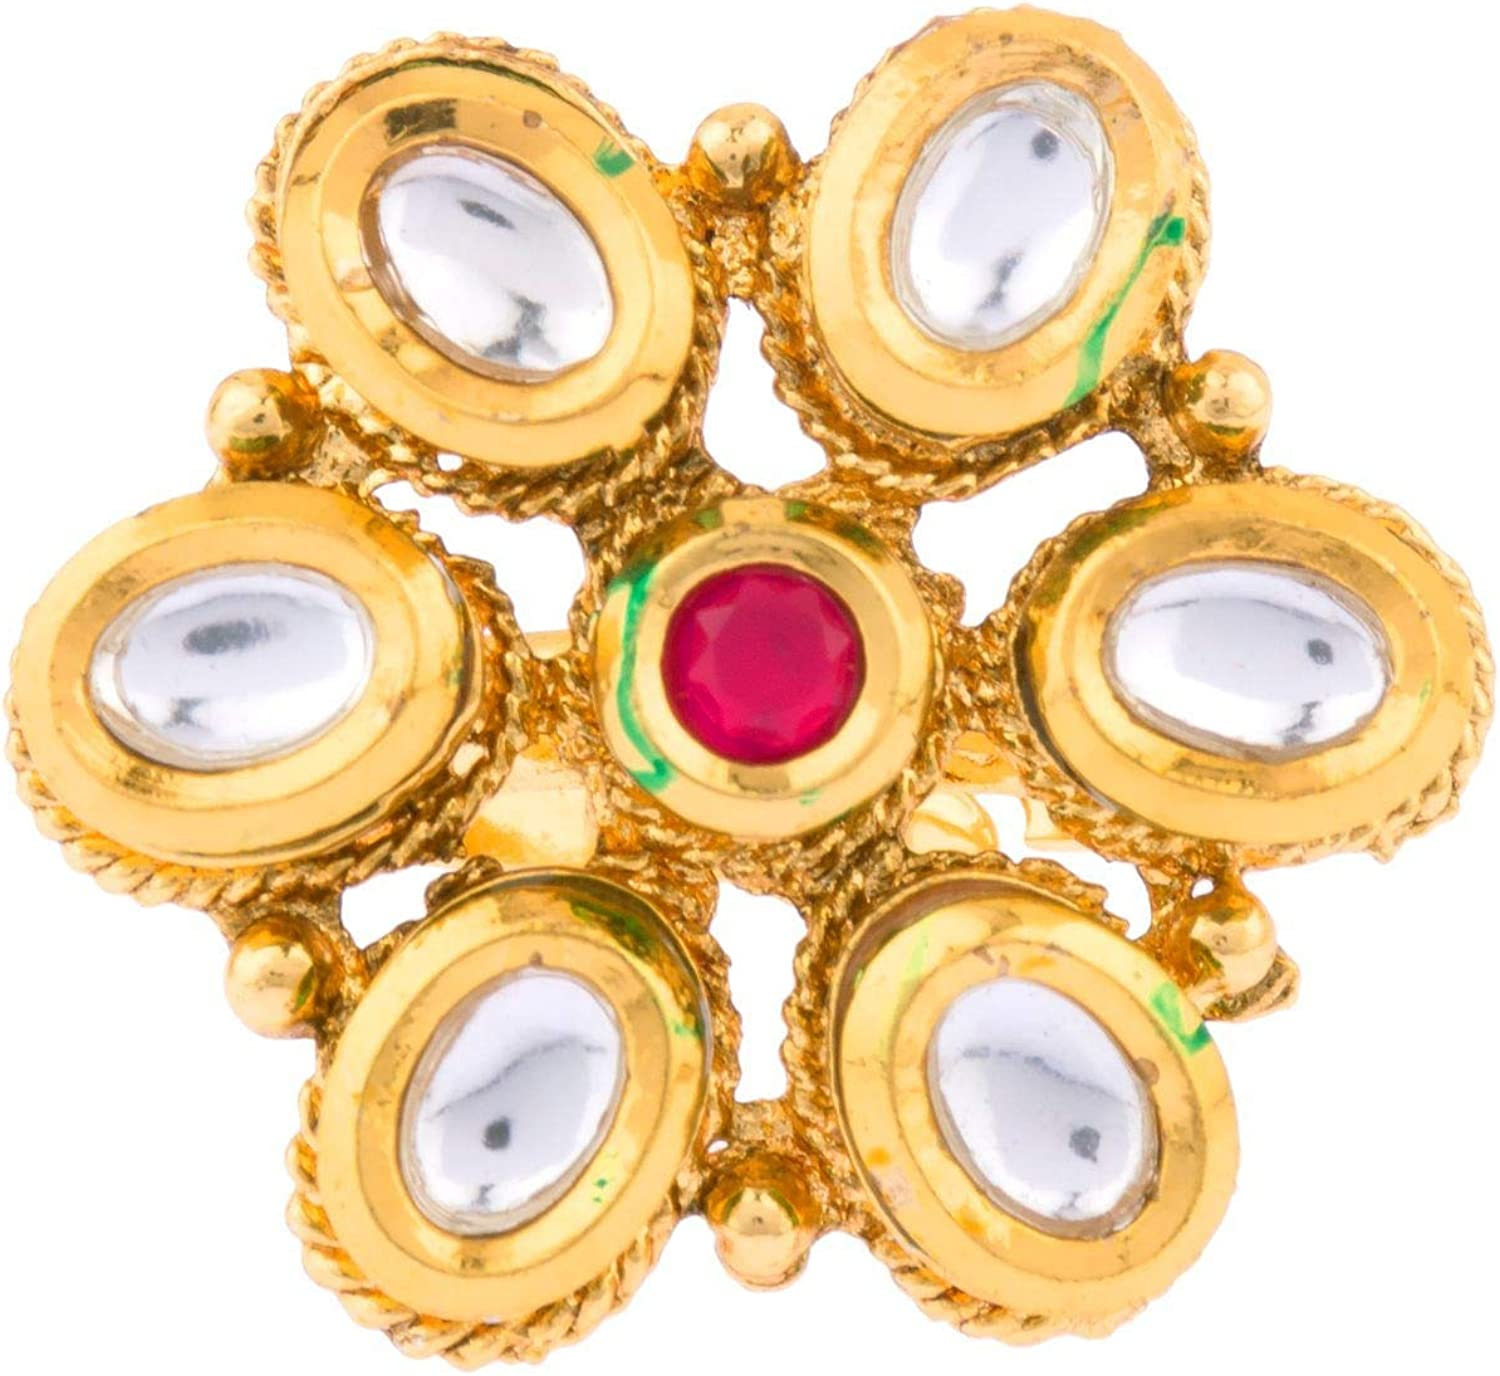 Gemstones 925 Silver Oxydized Adjustable Rings for Girls or women Ethnic Rings Handmade Indian Jewellery Valentine/'s Day gift for her.